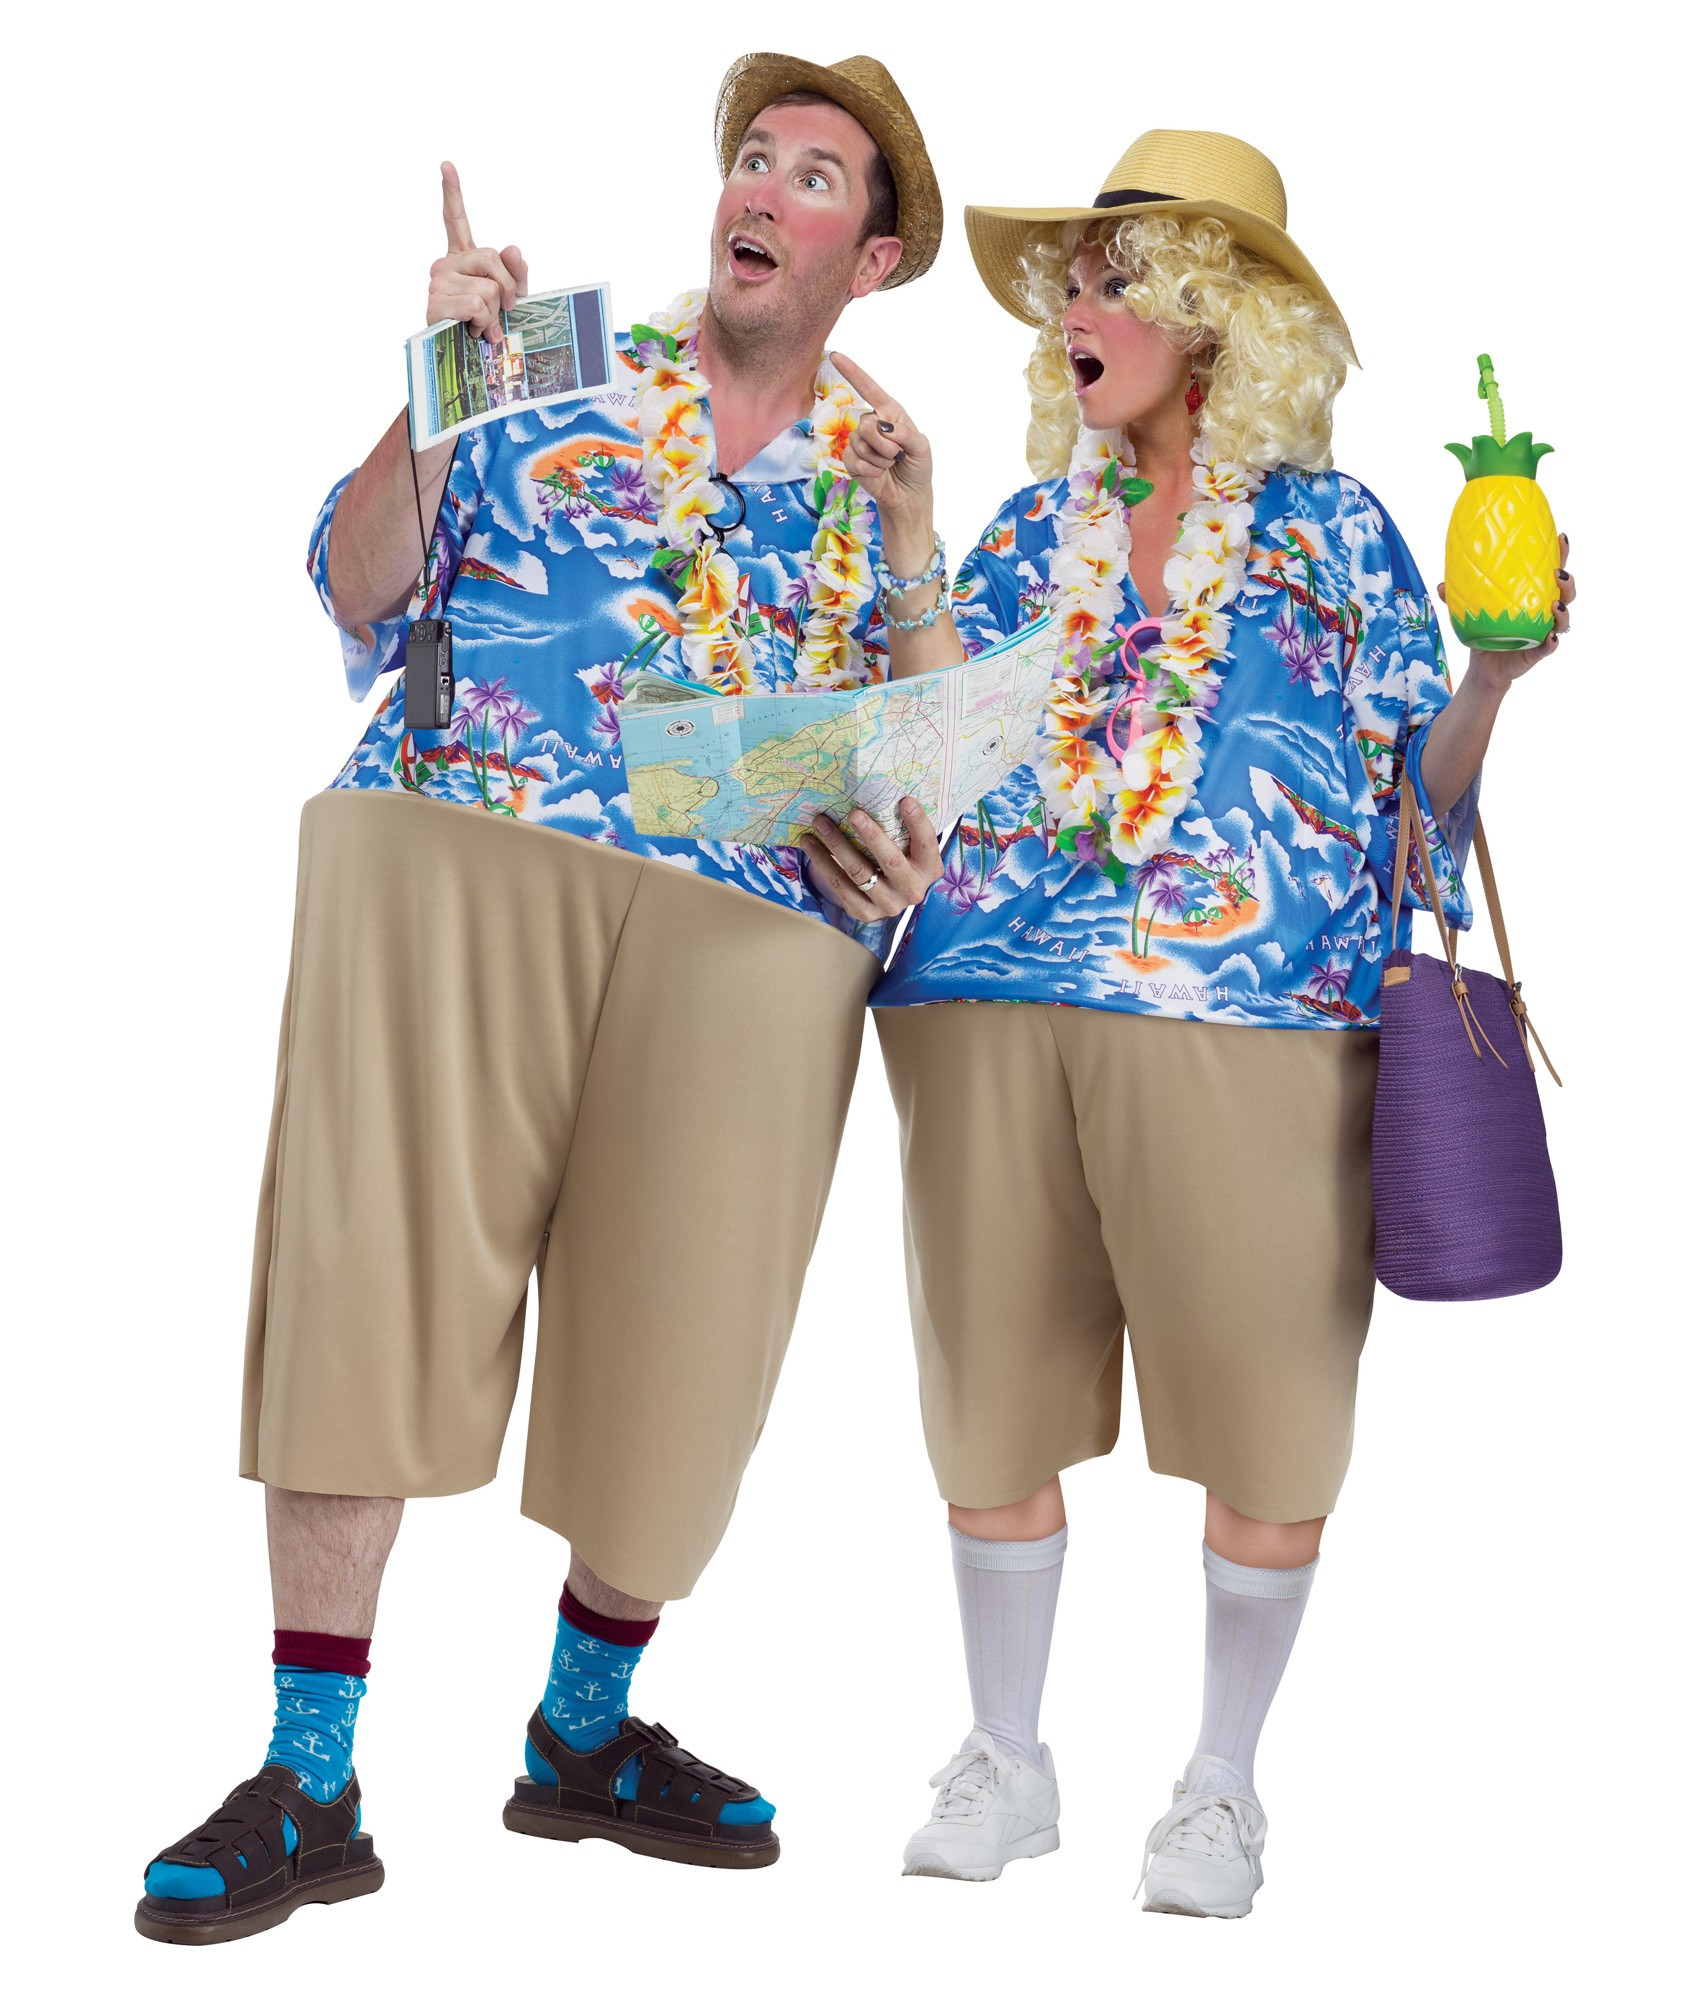 Adult Humor Unisex Couples Tacky Traveler Tourist Funny Fat Halloween Costume  sc 1 st  eBay & Adult Humor Unisex Couples Tacky Traveler Tourist Funny Fat ...